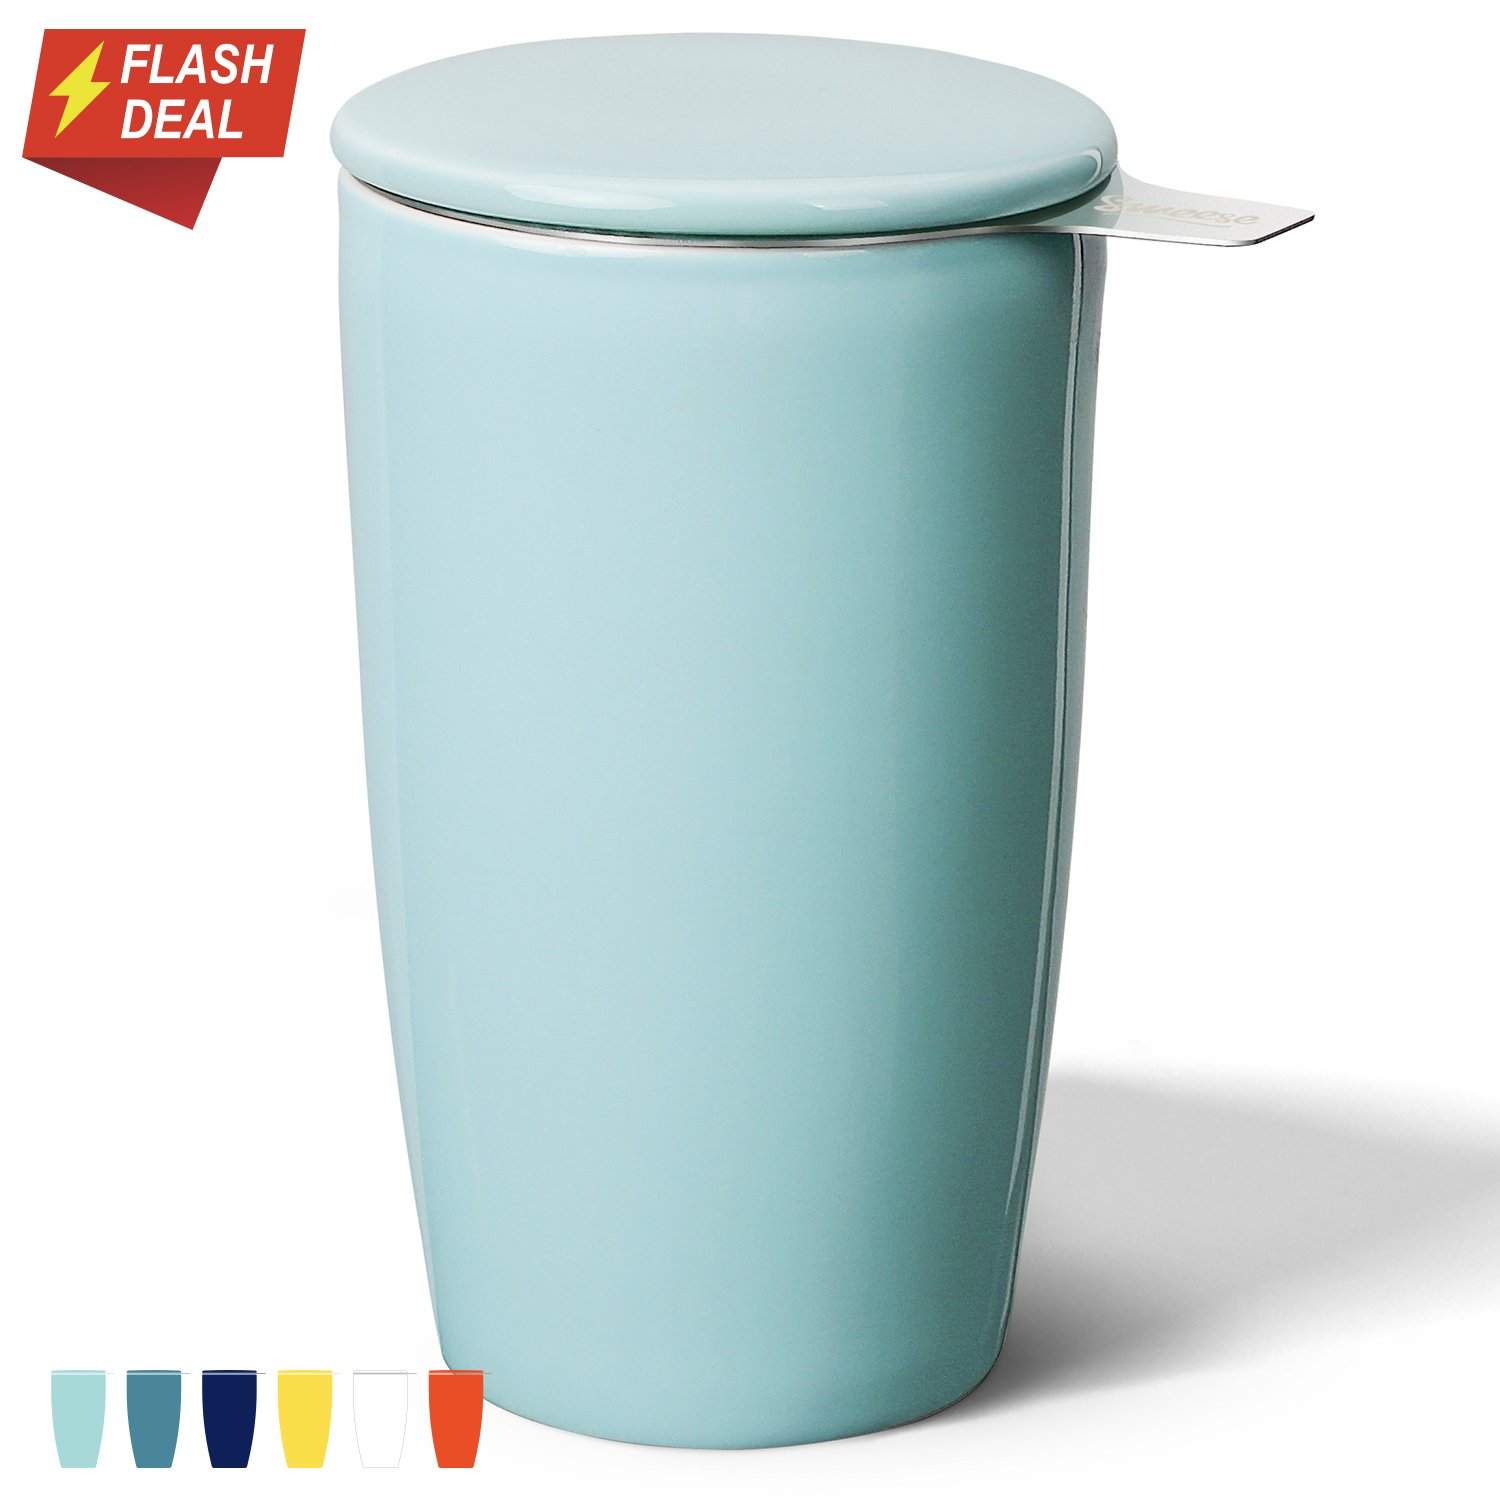 Sweese 2502 Porcelain Tea Infuser Mug - Double-Walled Insulated Cup with Deep Stainless Steel Infuser and Lid - 15oz, Turquoise